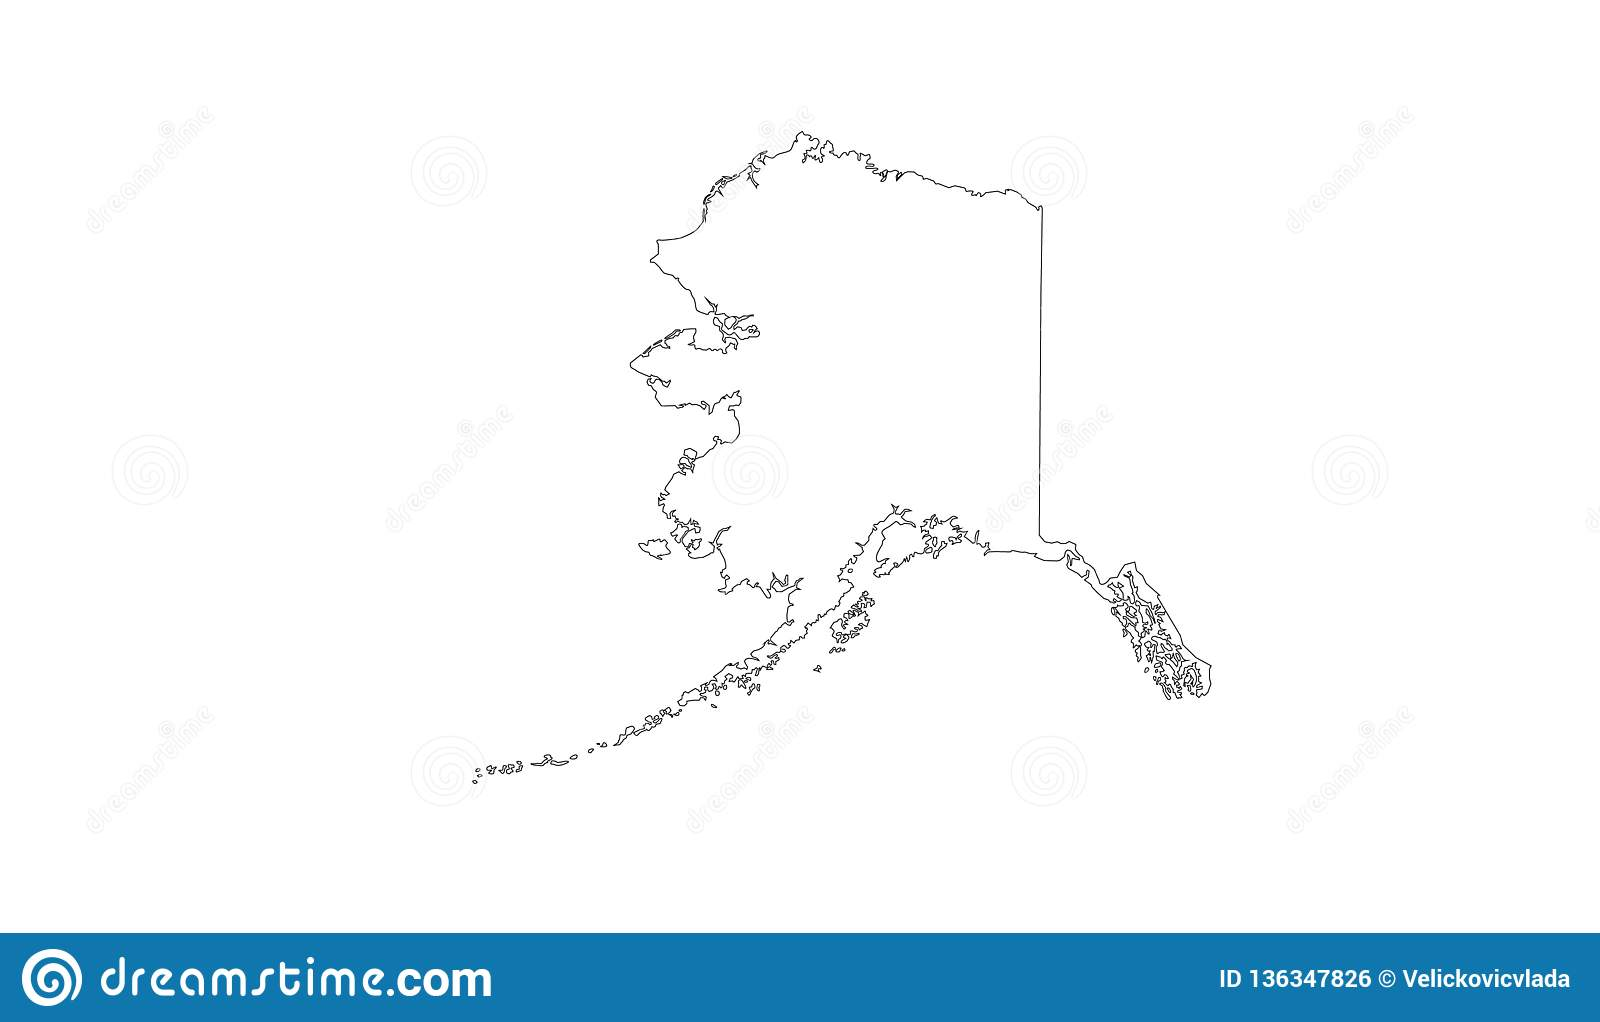 Alaska Map Us State In The Northwest Extremity Of North America - Us-map-alaska-state